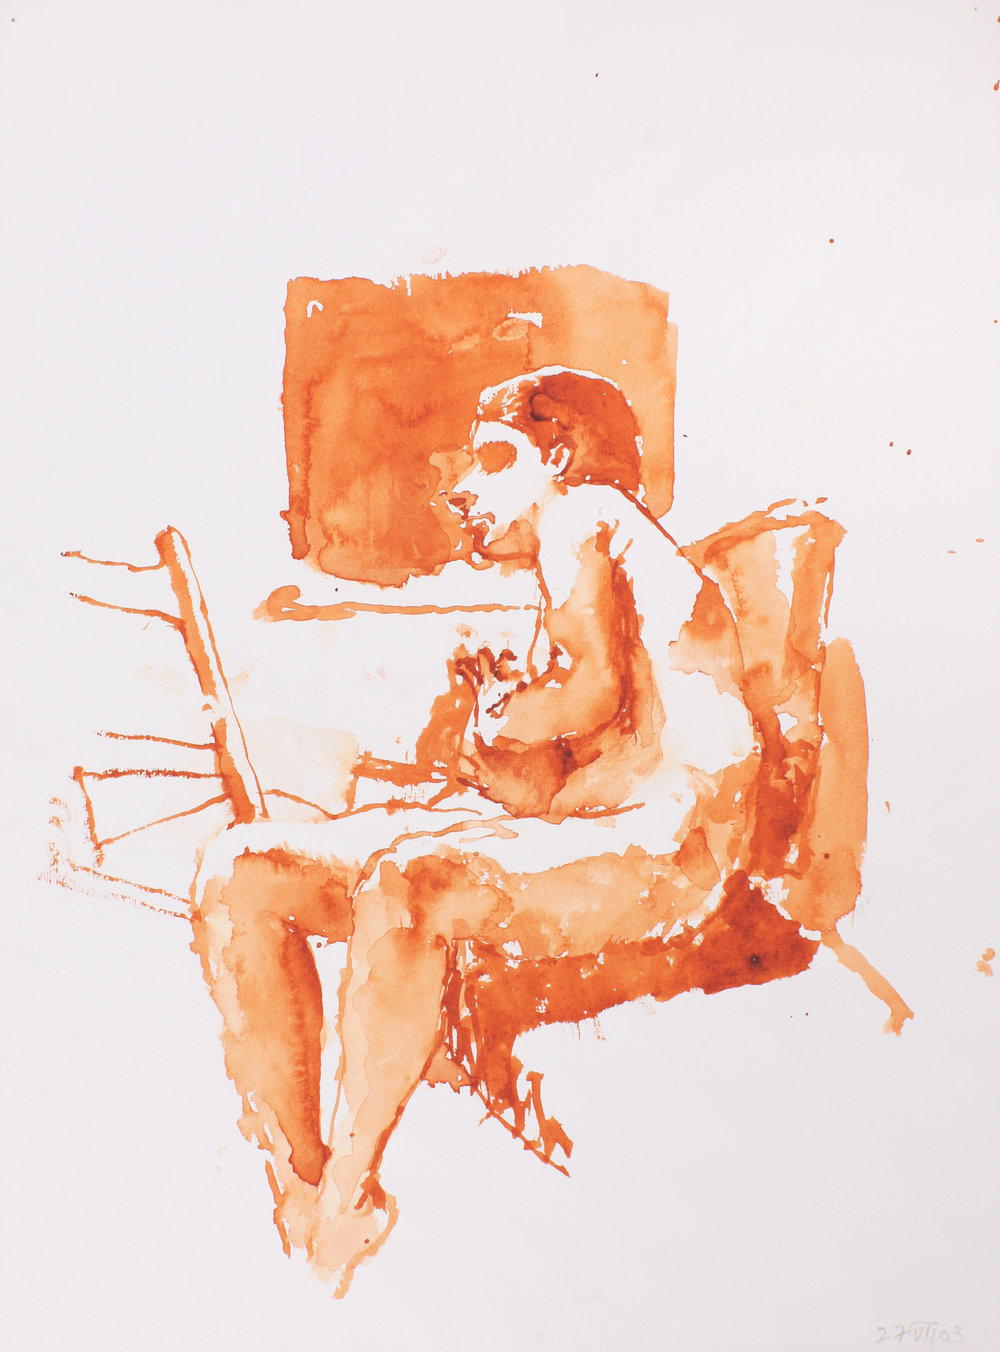 2003_Seated_Nude_with_Little_Chair_watercolour_on_paper_15x11in_38x28cm_WPF045.jpg